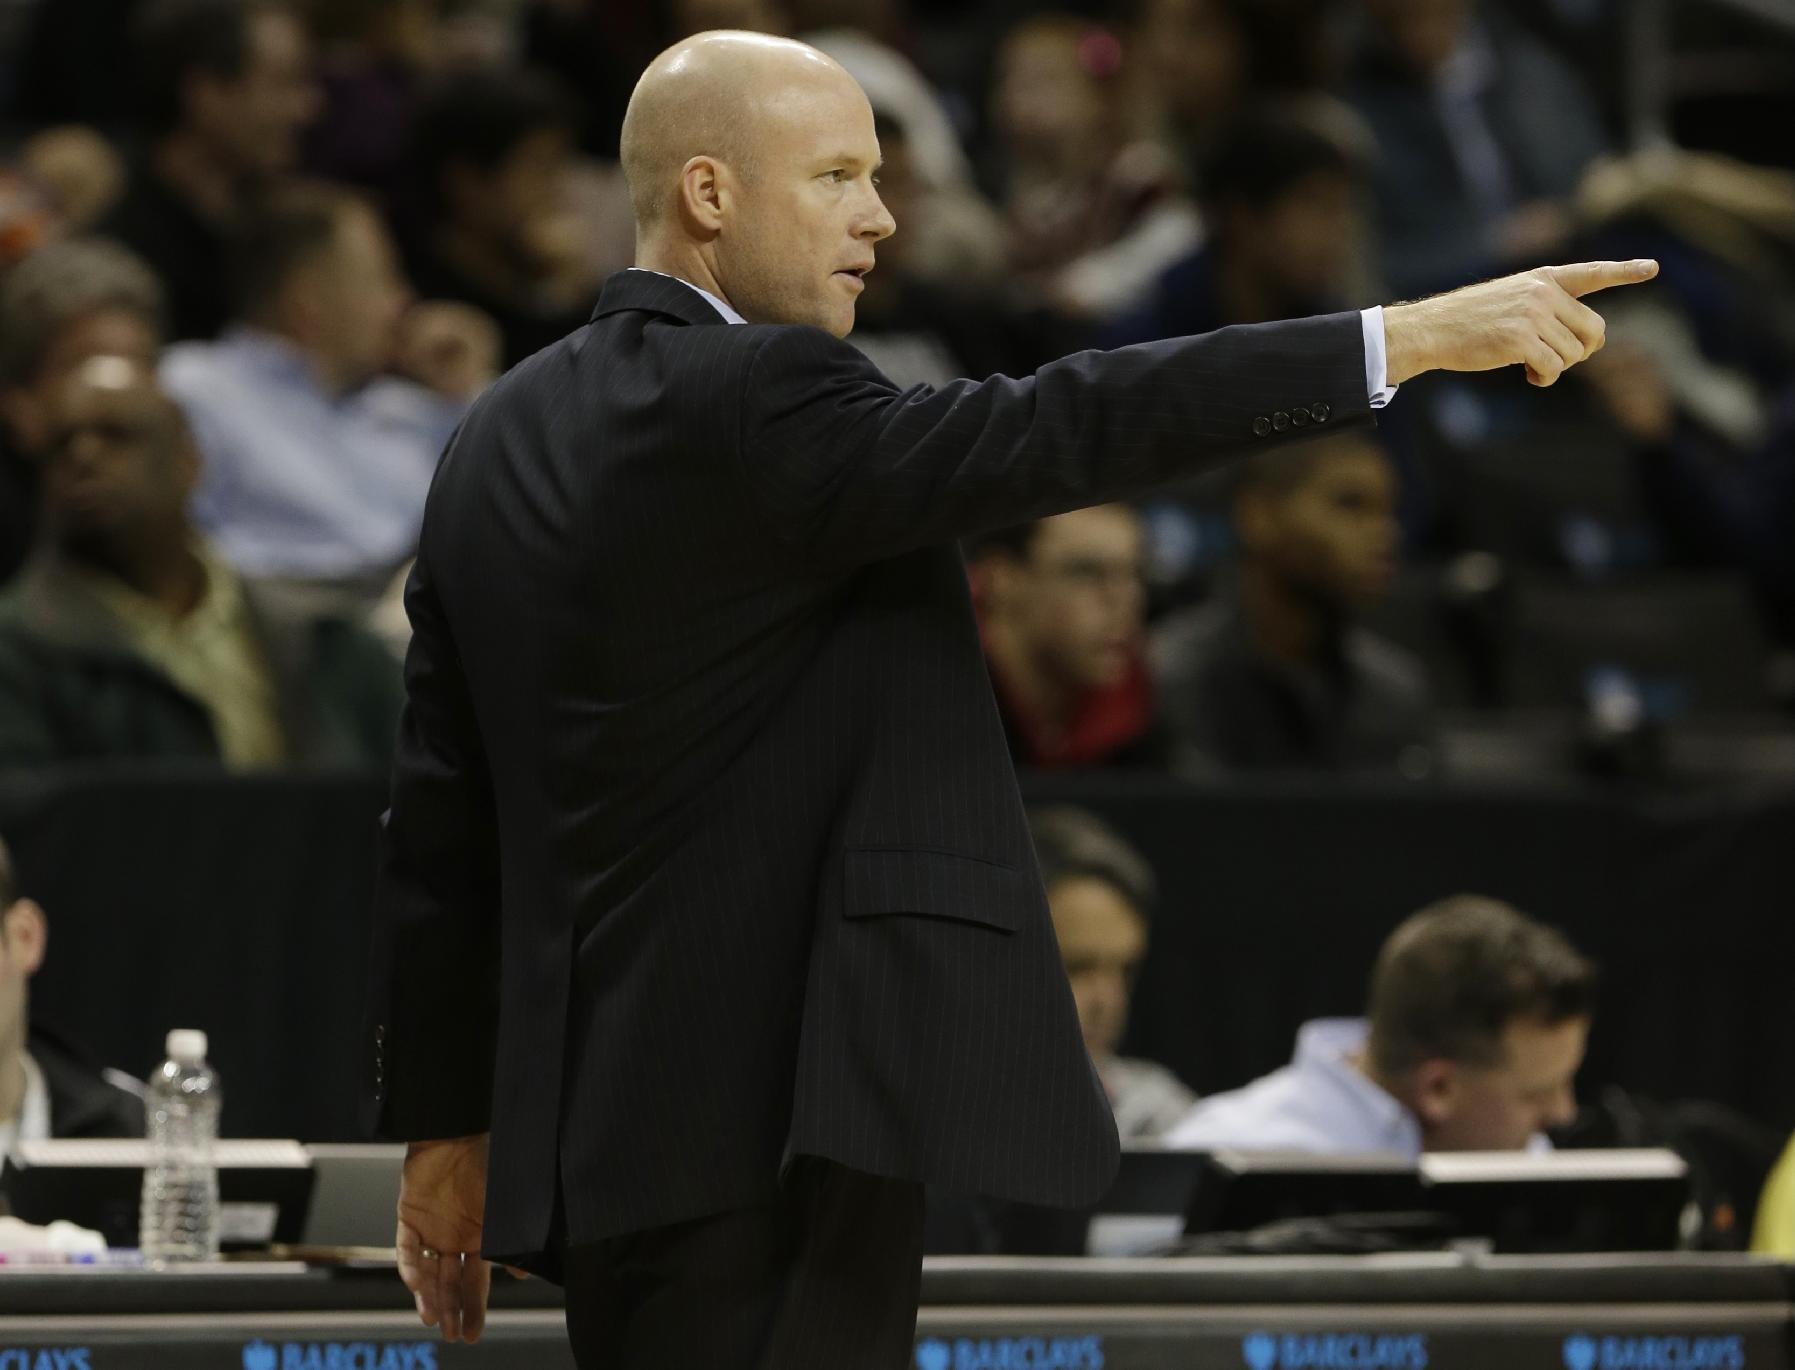 Seton Hall head coach Kevin Willard points to his team during the first half of a consolation game against the Virginia Tech in the Coaches vs. Cancer NCAA college basketball game on Saturday, Nov. 23, 2013, in New York